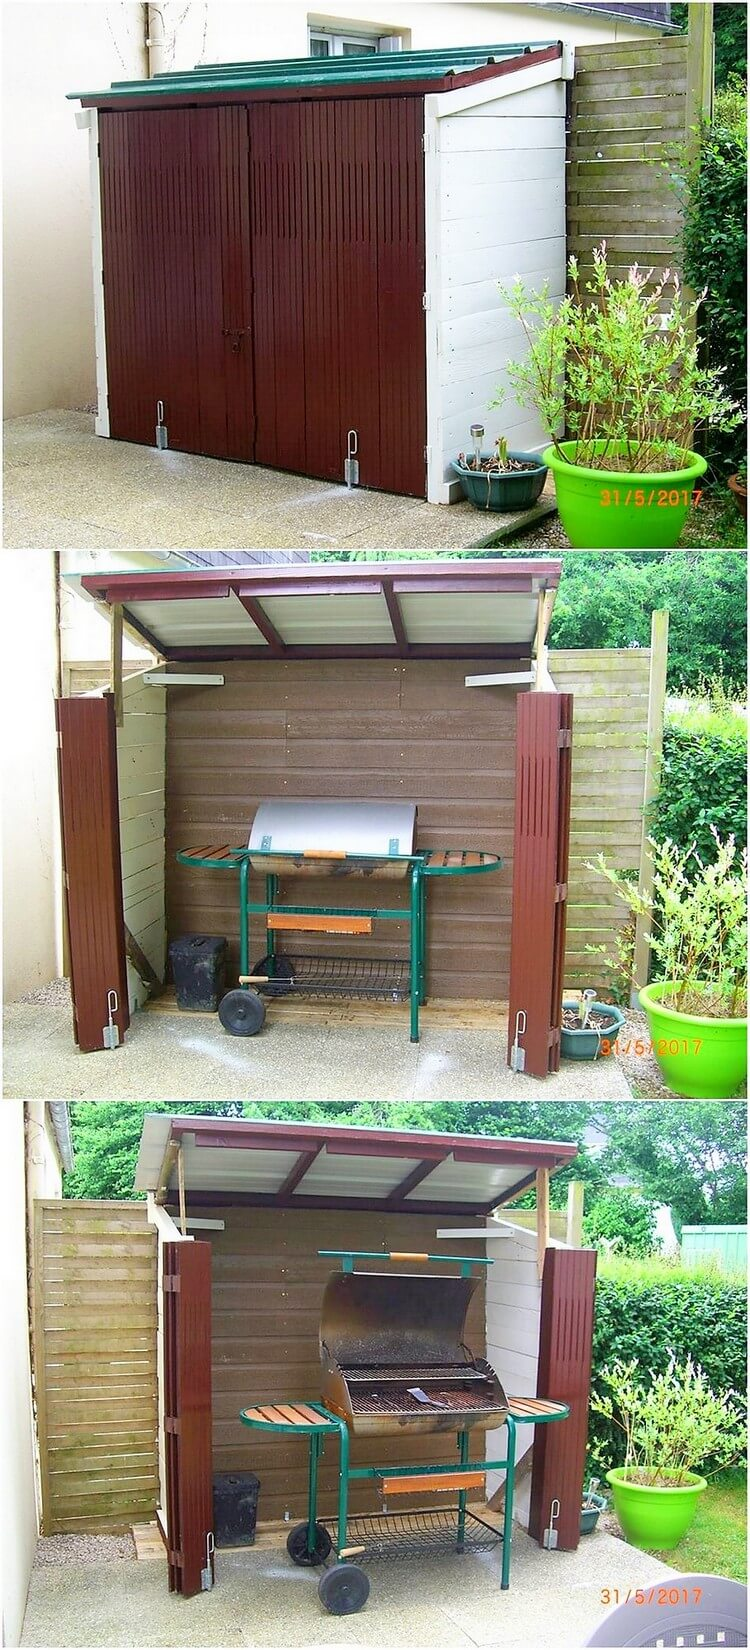 Pallet Outdoor BBQ Shed